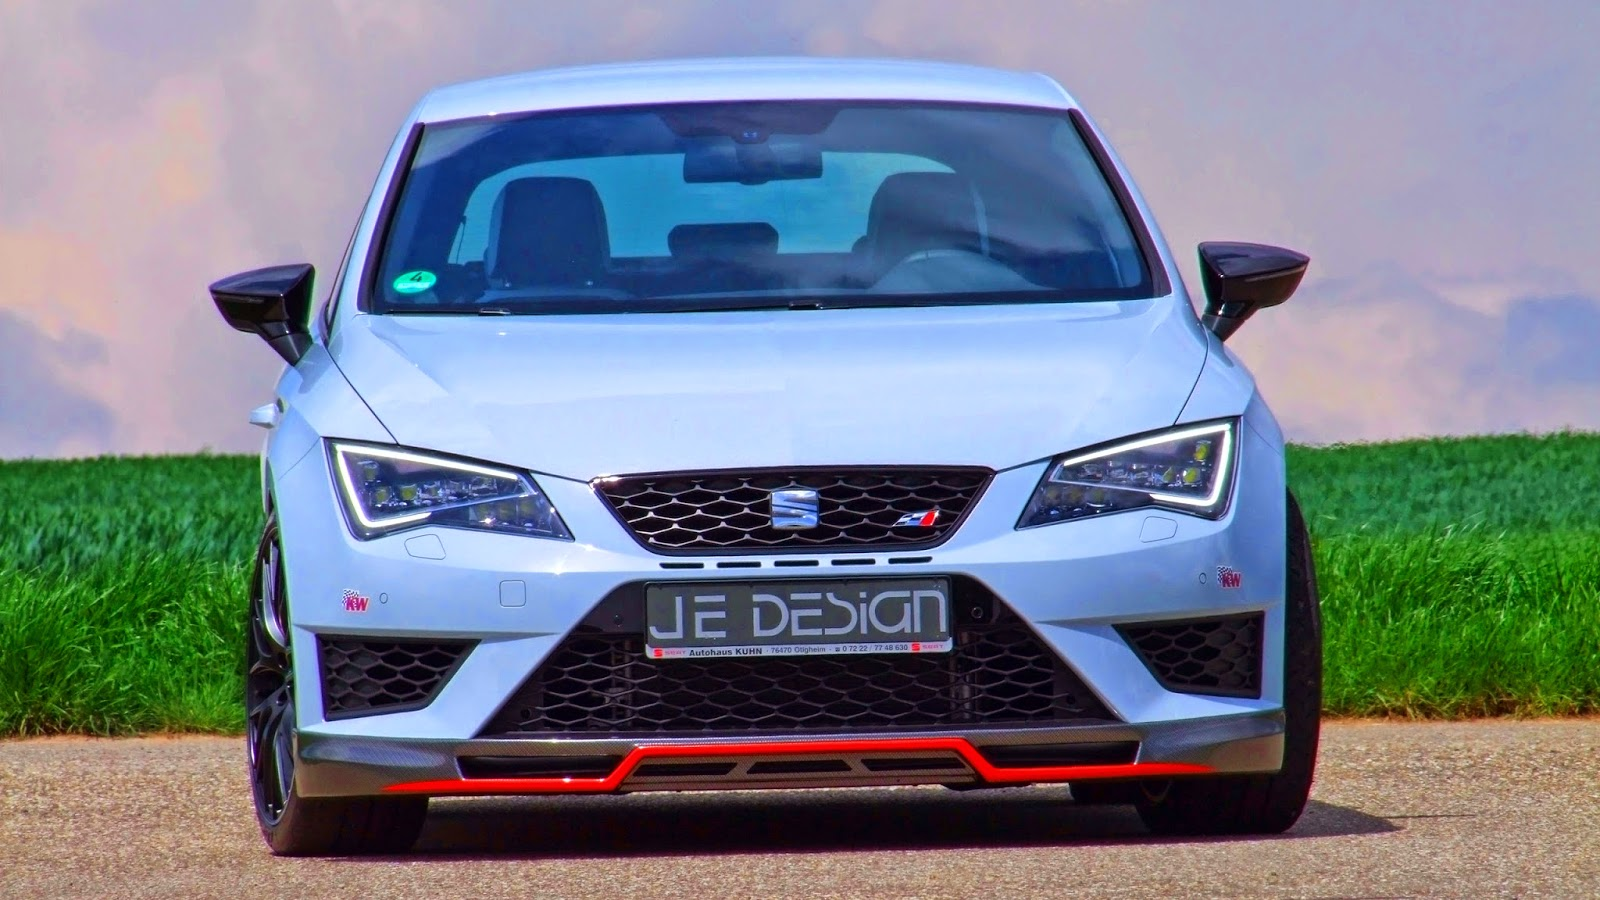 je design seat leon cupra 280 sc 2014 aro 19 350 cv 45. Black Bedroom Furniture Sets. Home Design Ideas